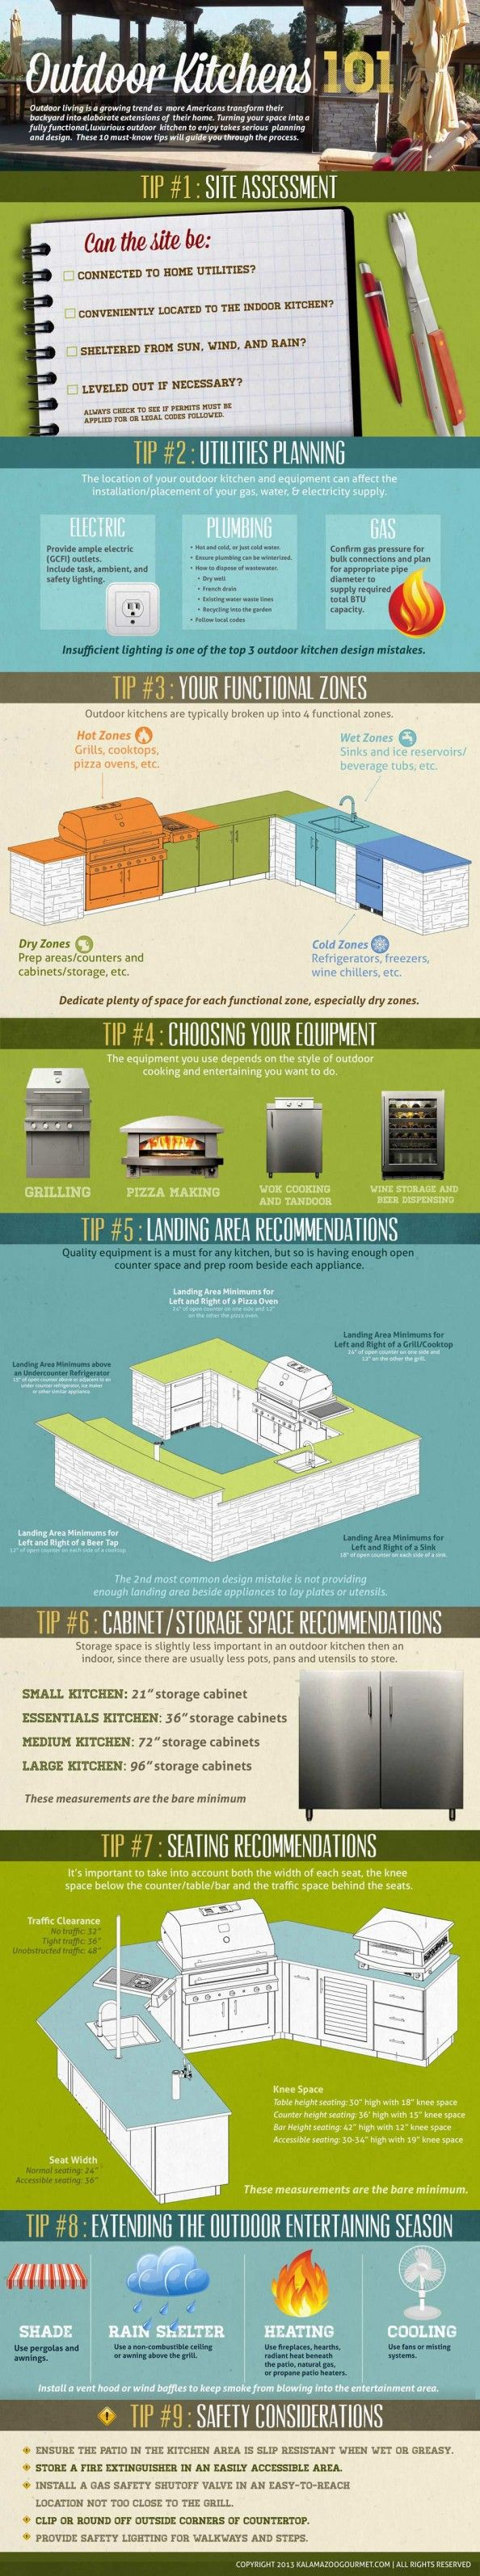 Outdoor Kitchens 101 Infographic: Visual interest added by varying ...